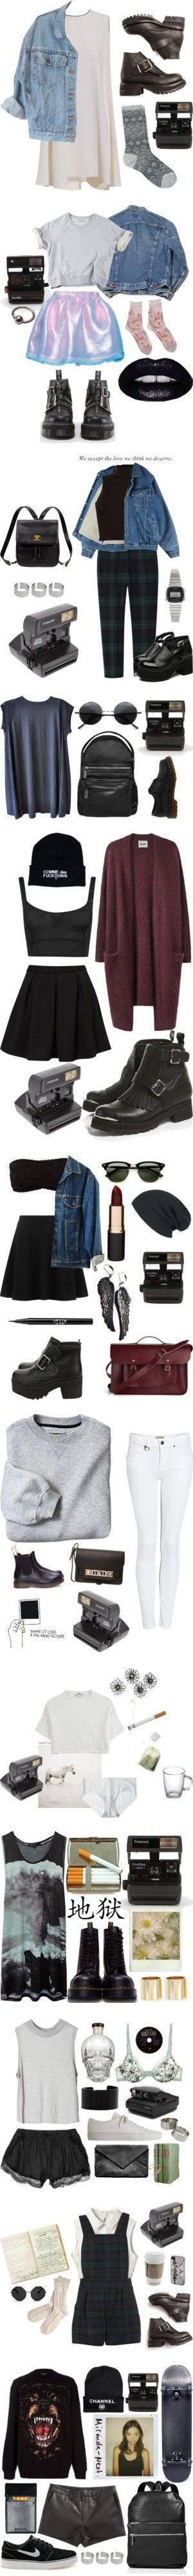 """""""Shootfits"""" by froufrouu ❤ liked on Polyvore I want everything.... Pity I'm not cool enough to pull any of them off! :/"""